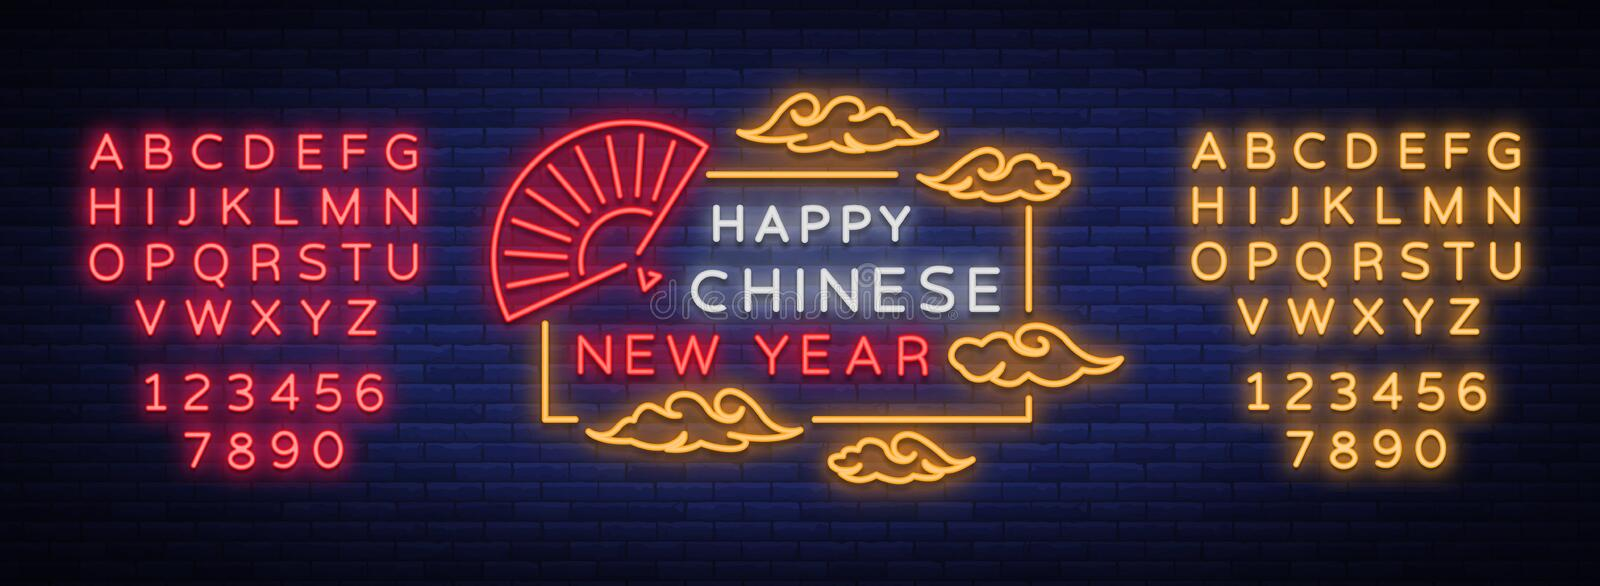 New Chinese Year 2018 Greeting Card Vector. Neon sign, a symbol on winter holidays. Happy New Year Chinese 2018. Neon. Sign, flyer, shining postcard, holiday vector illustration